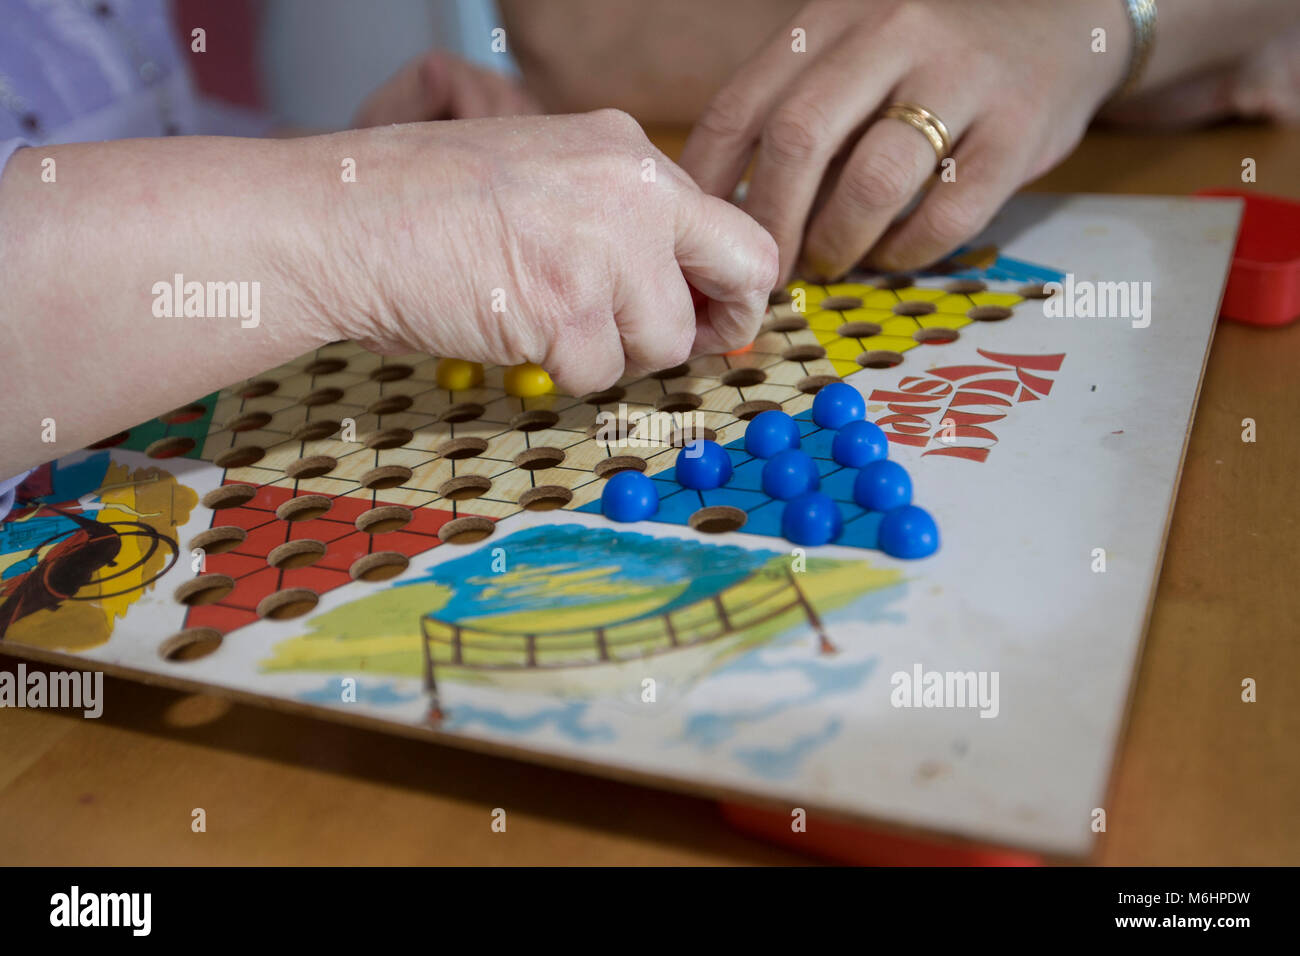 Woman playing china chess, Upplands Väsby, Sweden. Stock Photo